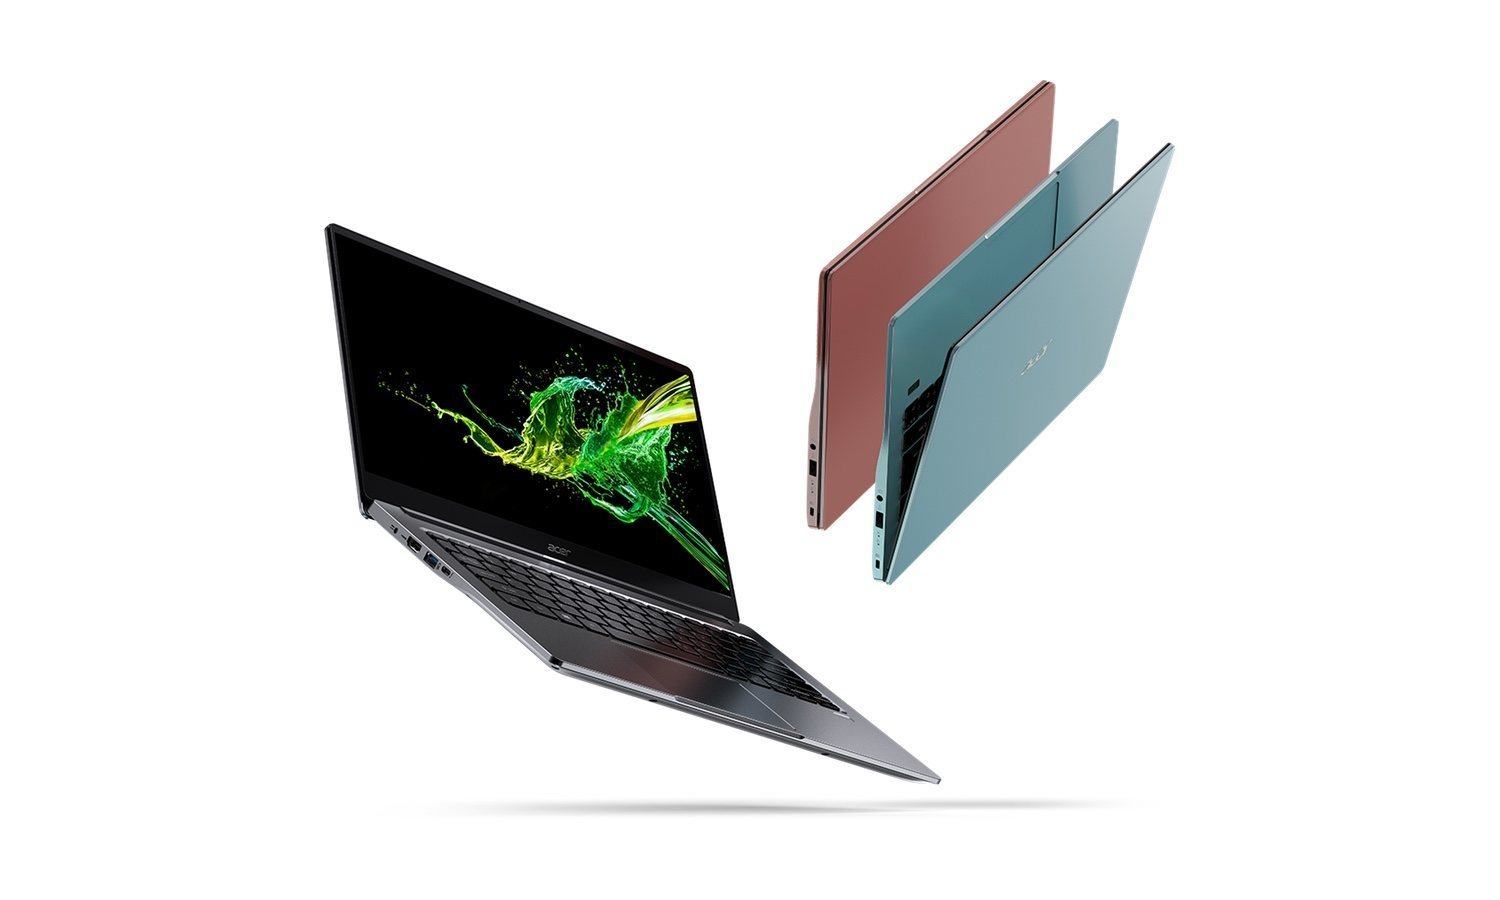 El Acer Swift 3, disponible en azul, gris y rosa.